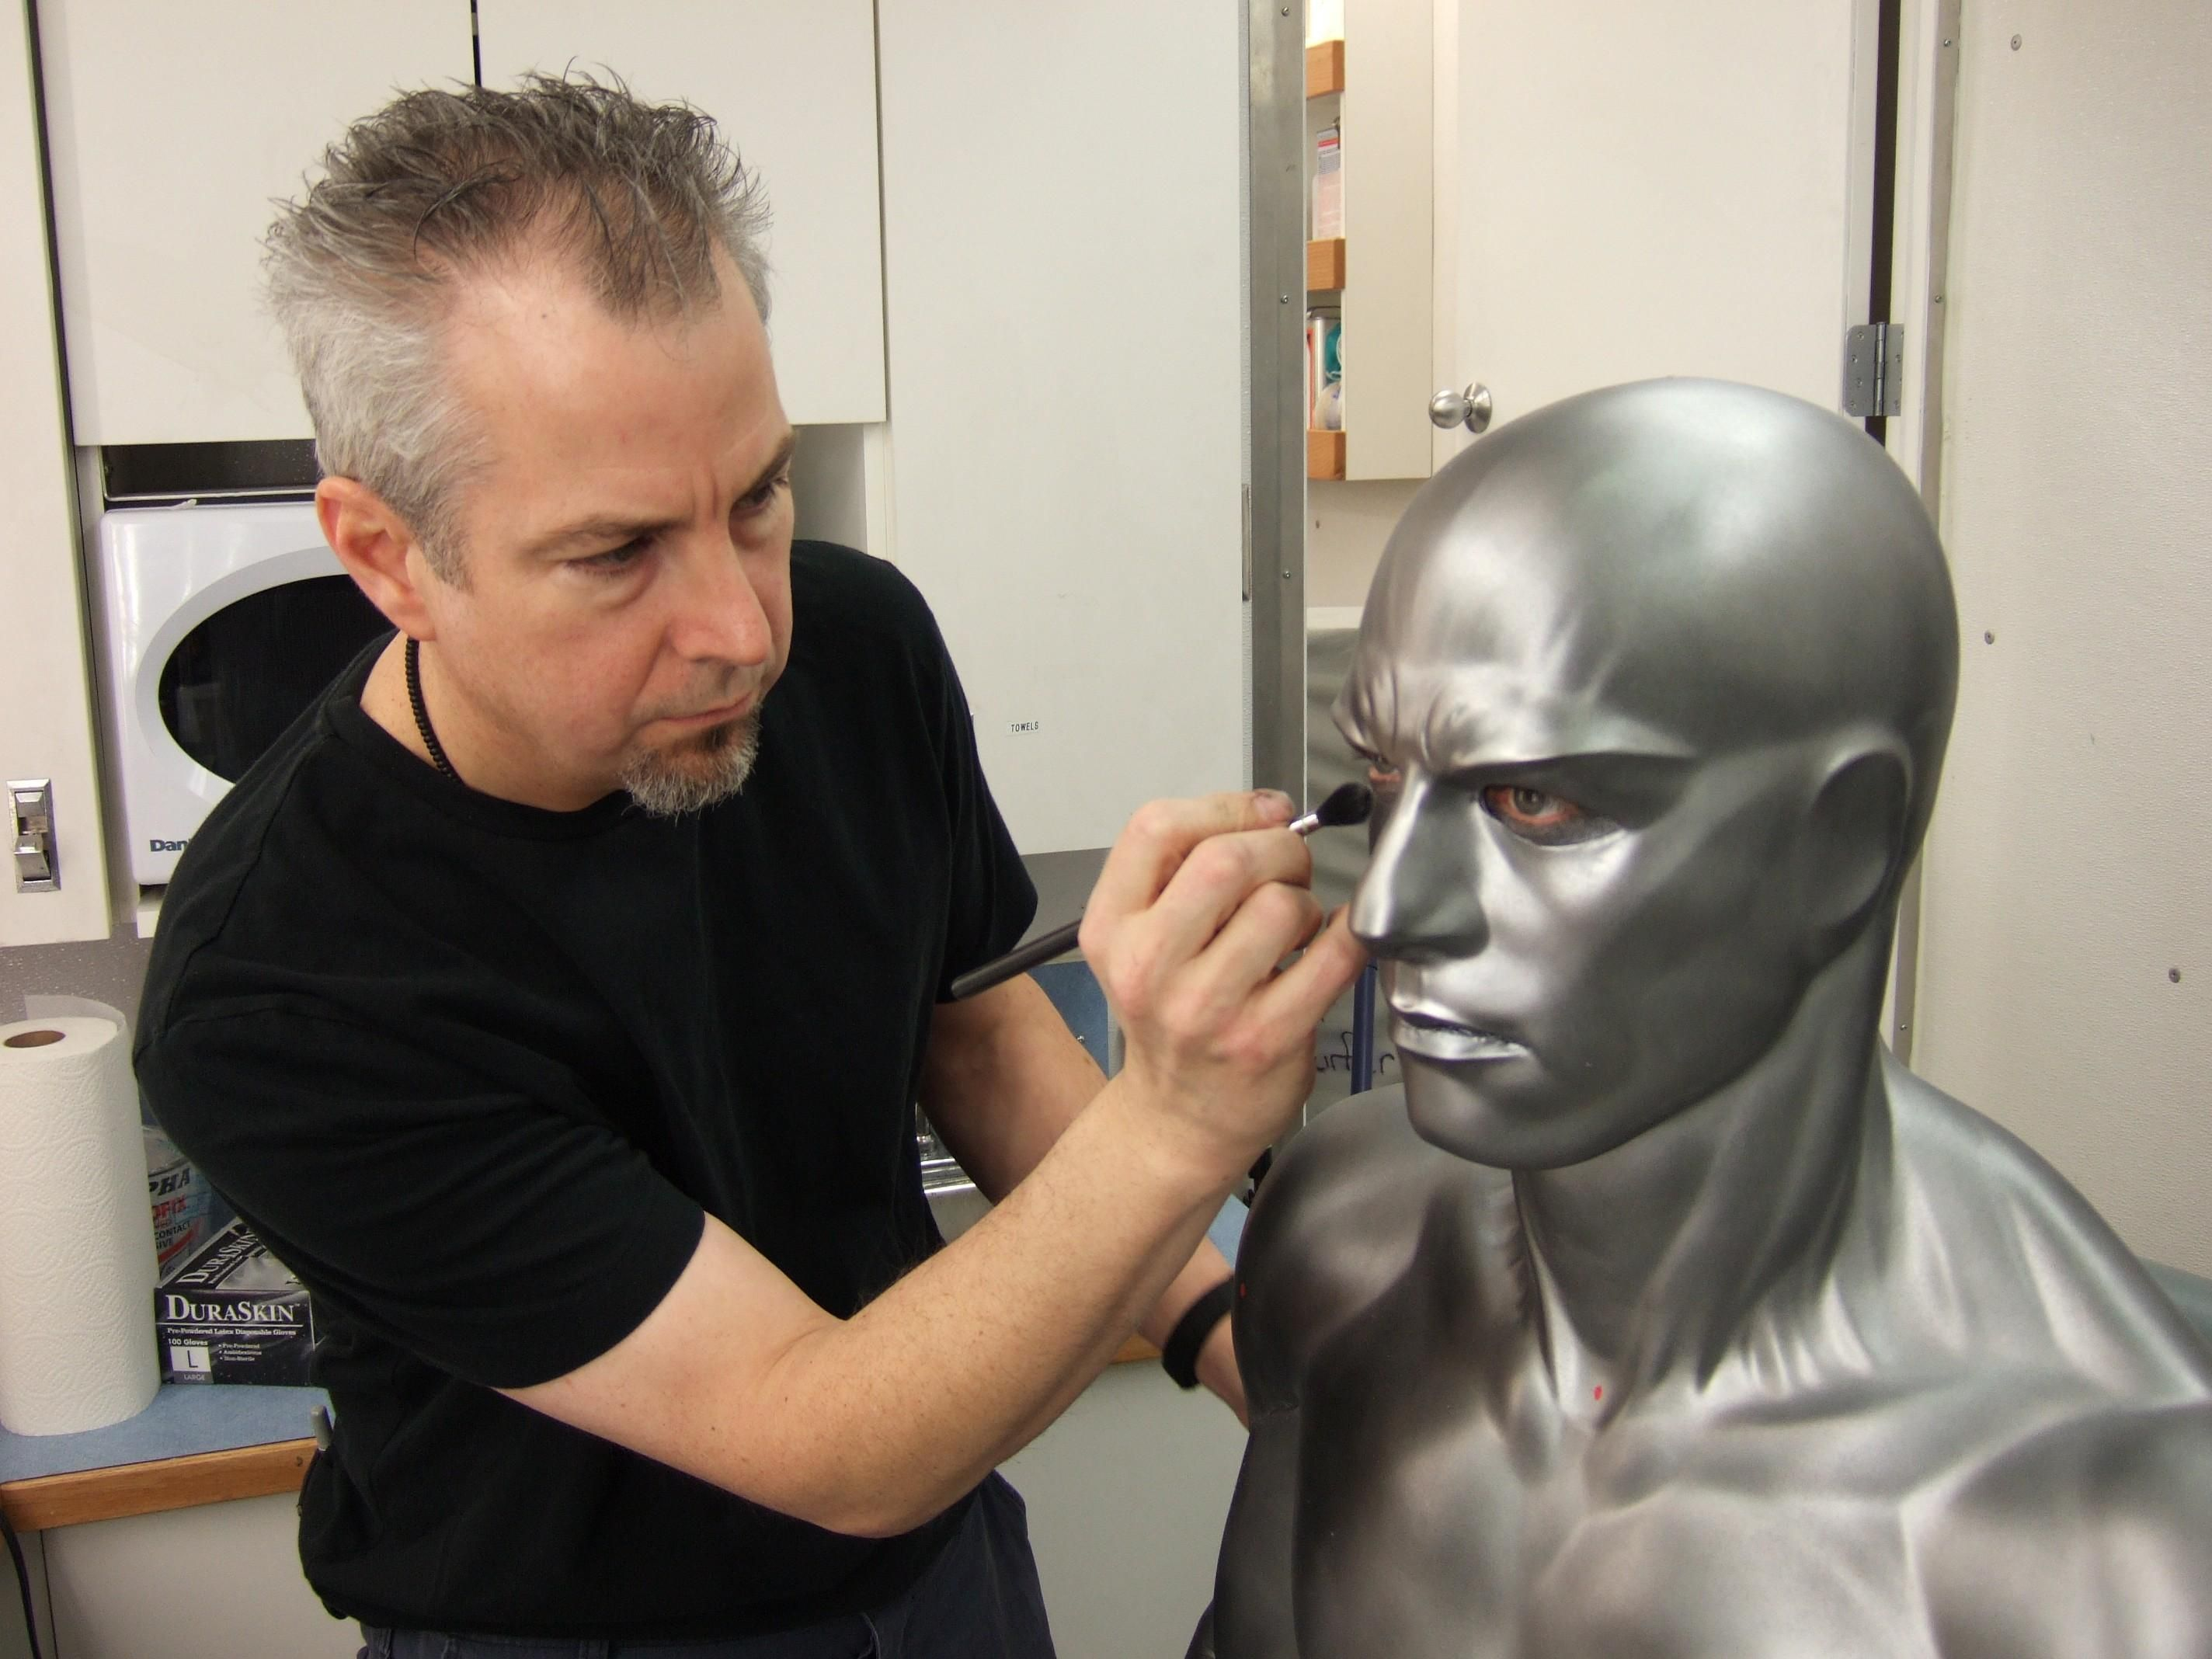 Silver Surfer Making Up II Como maquillarme, Maquillaje